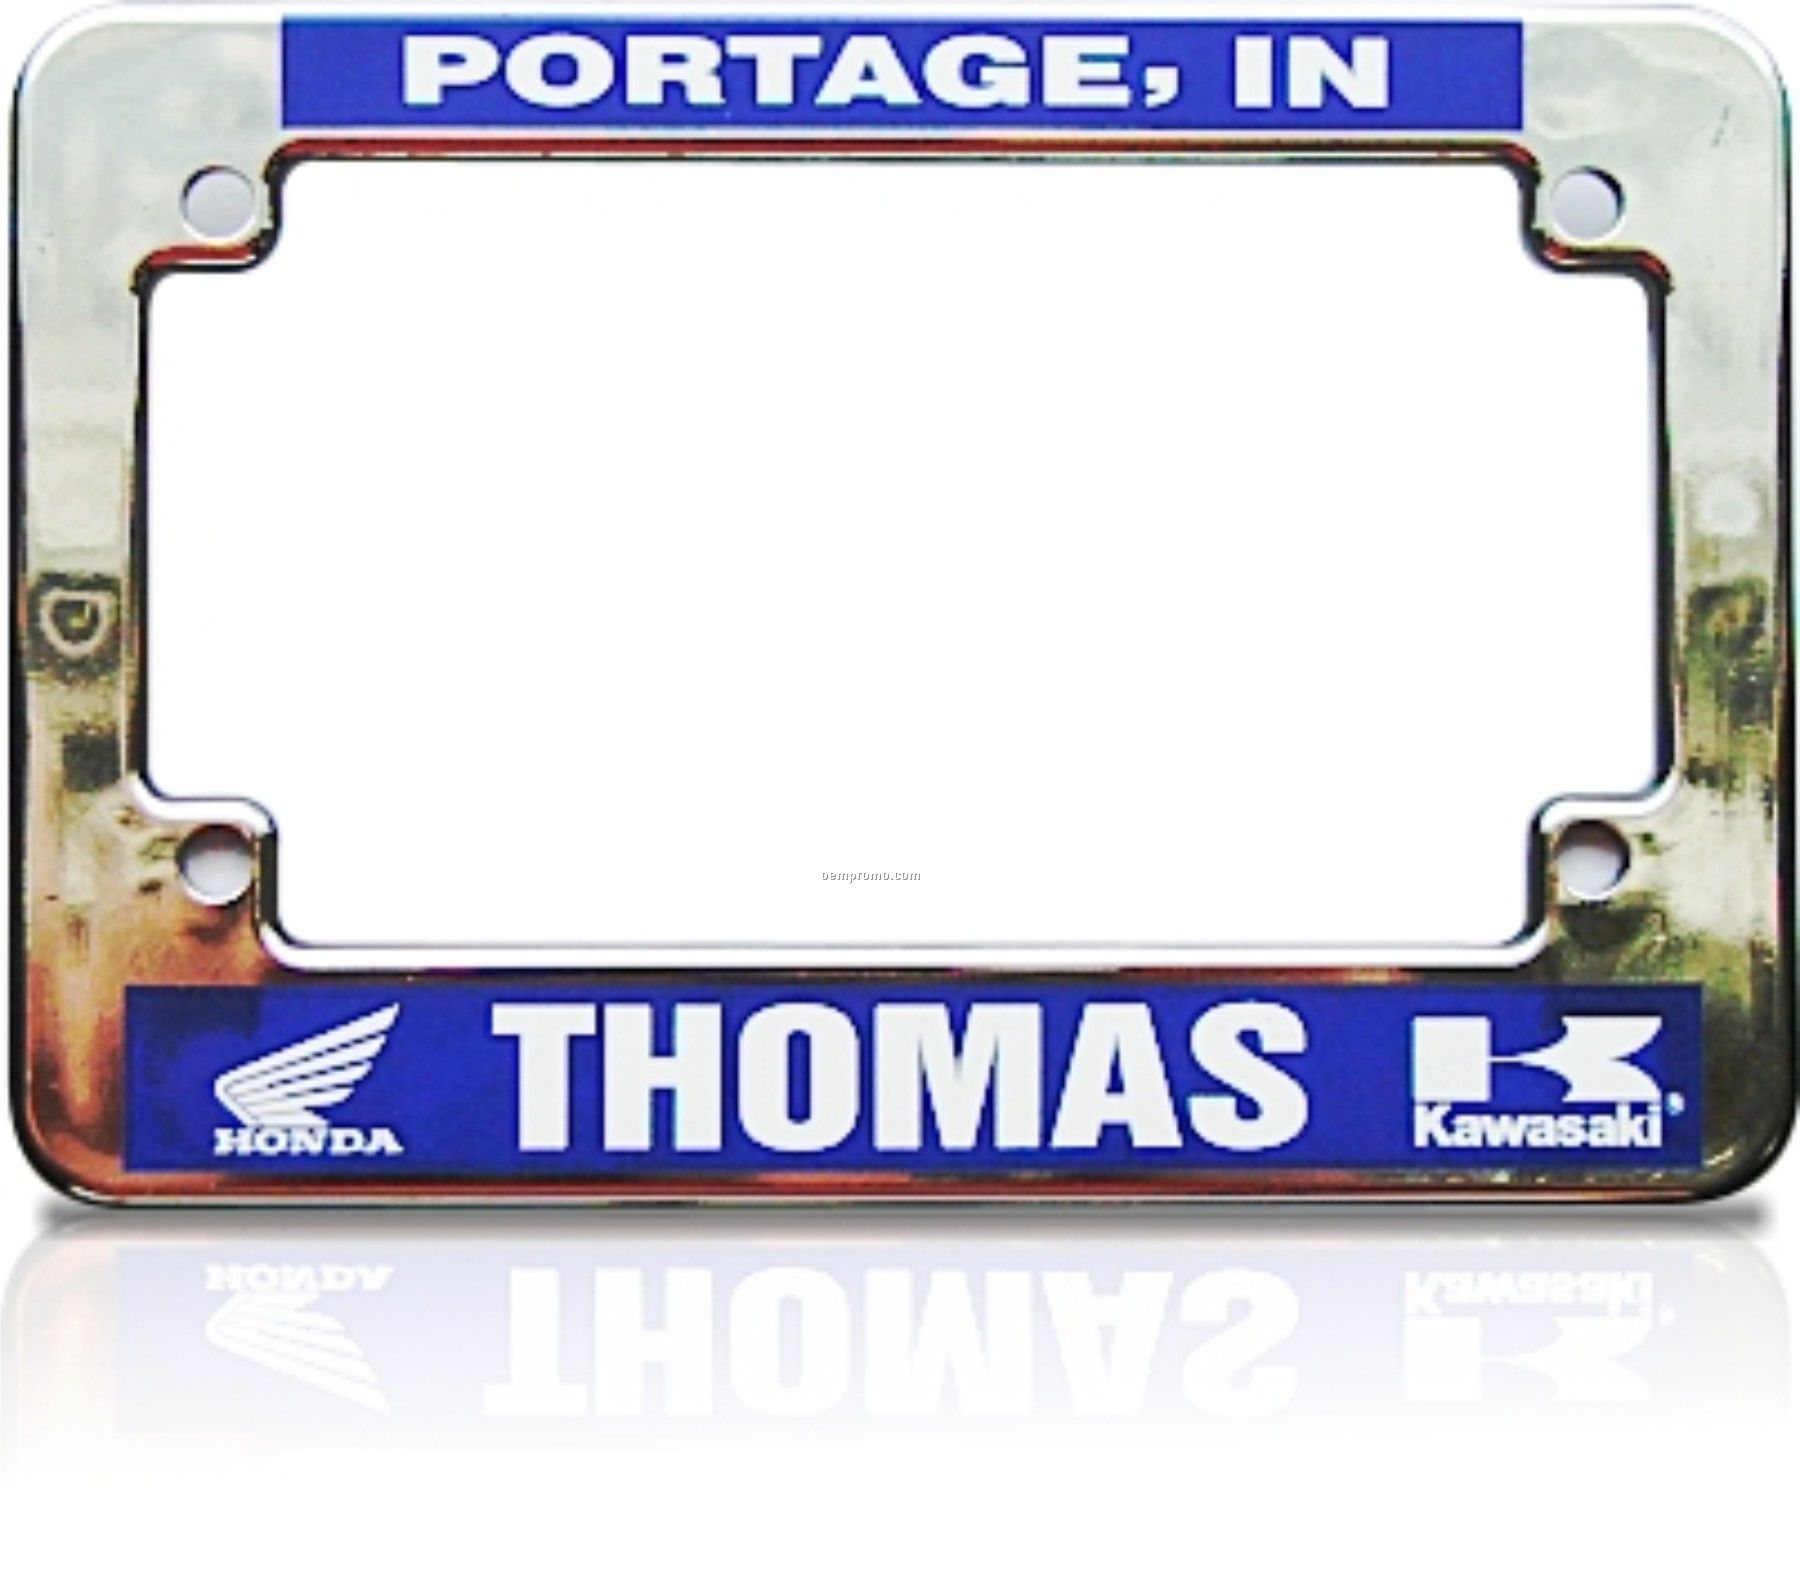 Motorcycle license plate dimensions usa